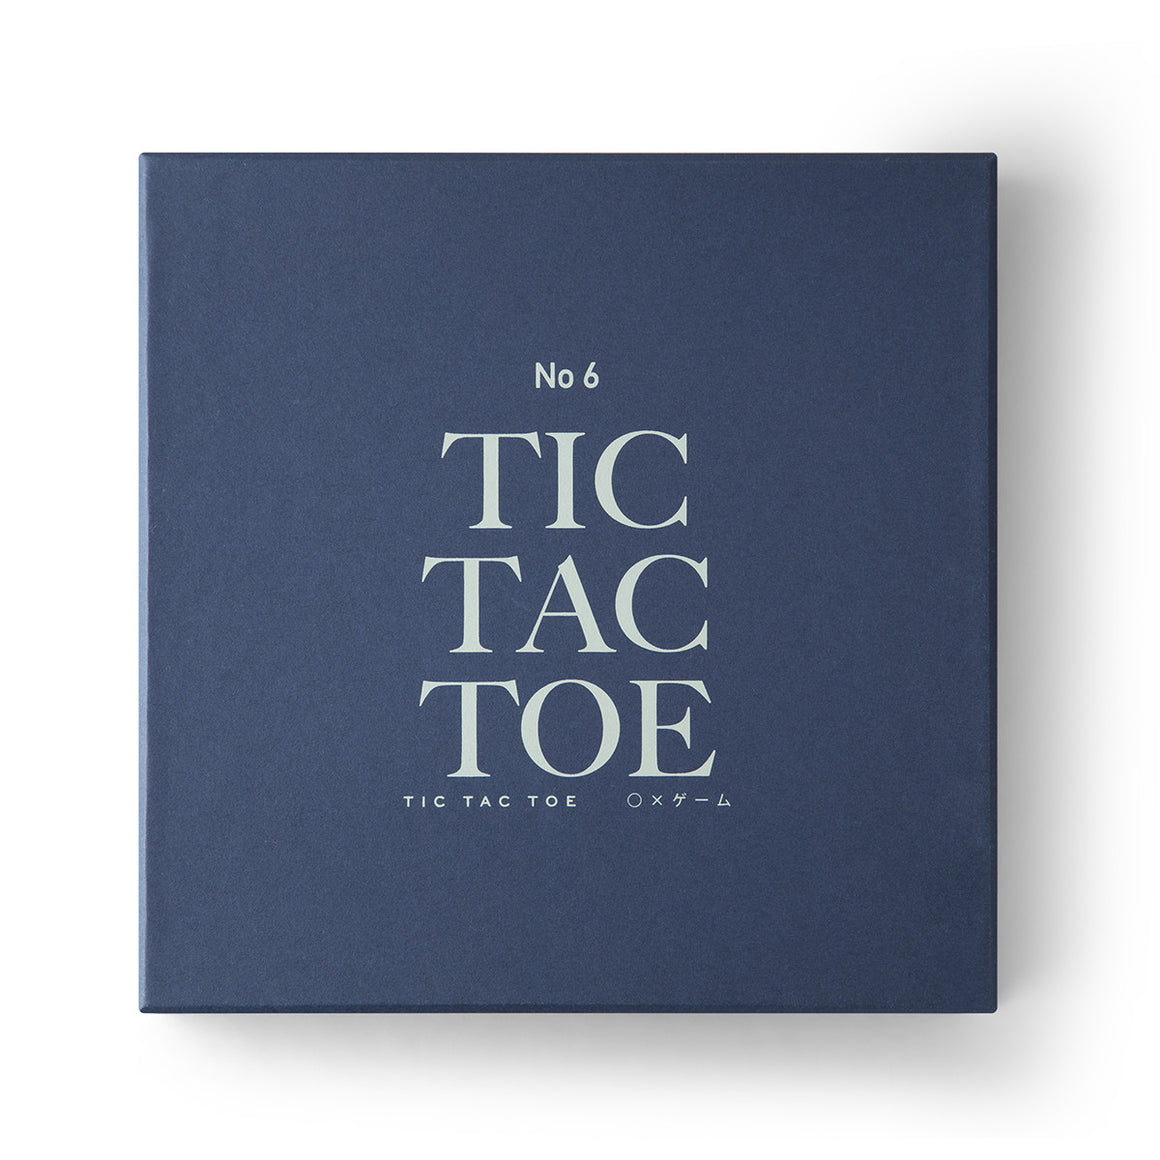 Image featuring a white background with a simplistic navy blue packaging box with the words No.6 Tic Tac Toe on the front